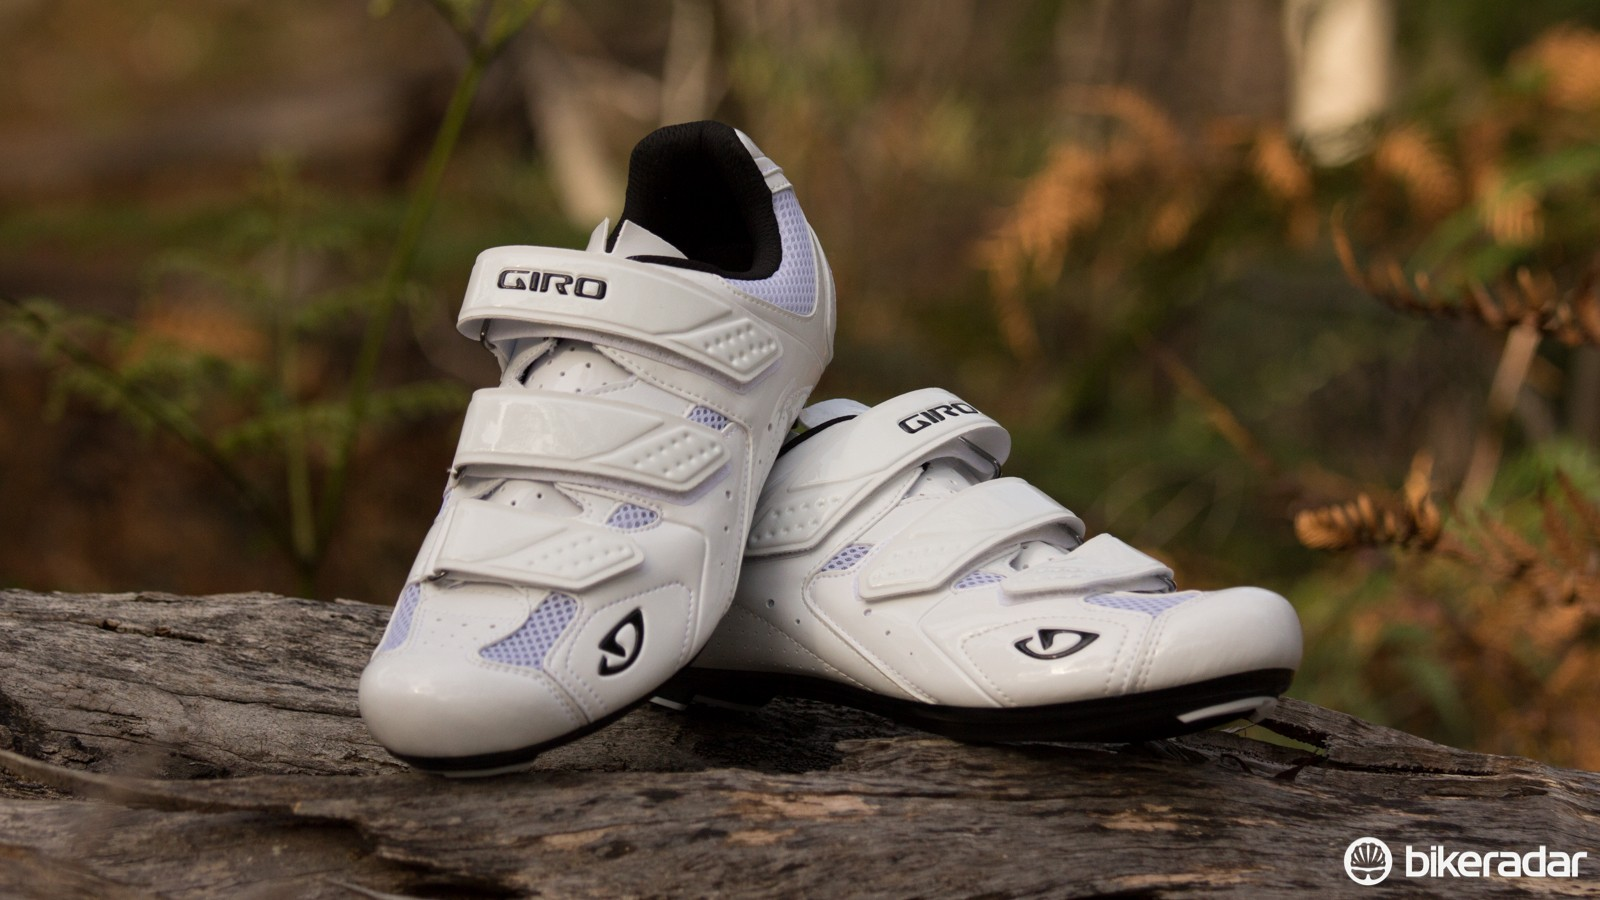 Giro Treble II road shoes - a budget option with a touch of style